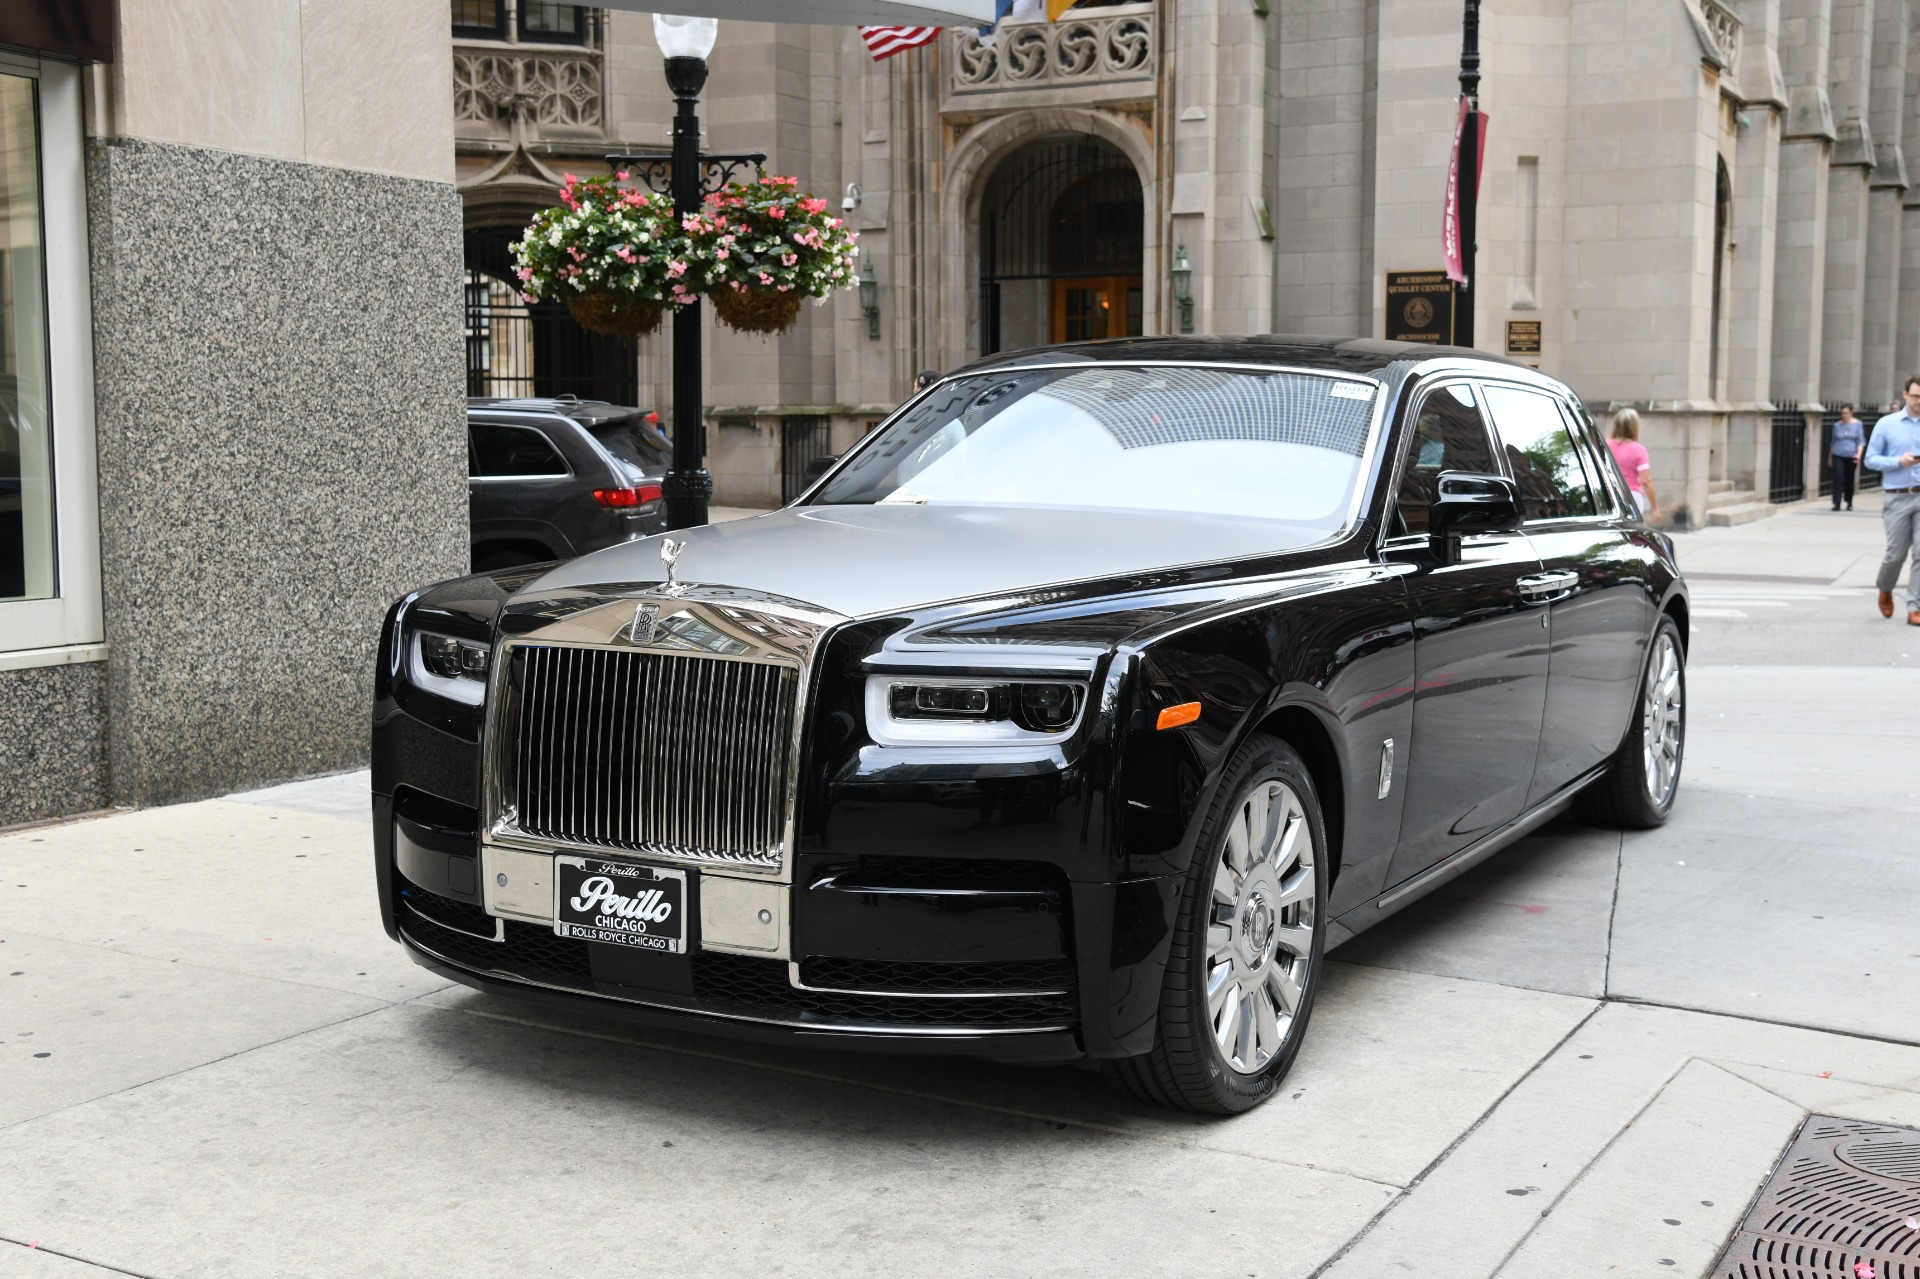 New 2019 Rolls-Royce Phantom Extended Wheelbase EWB | Chicago, IL